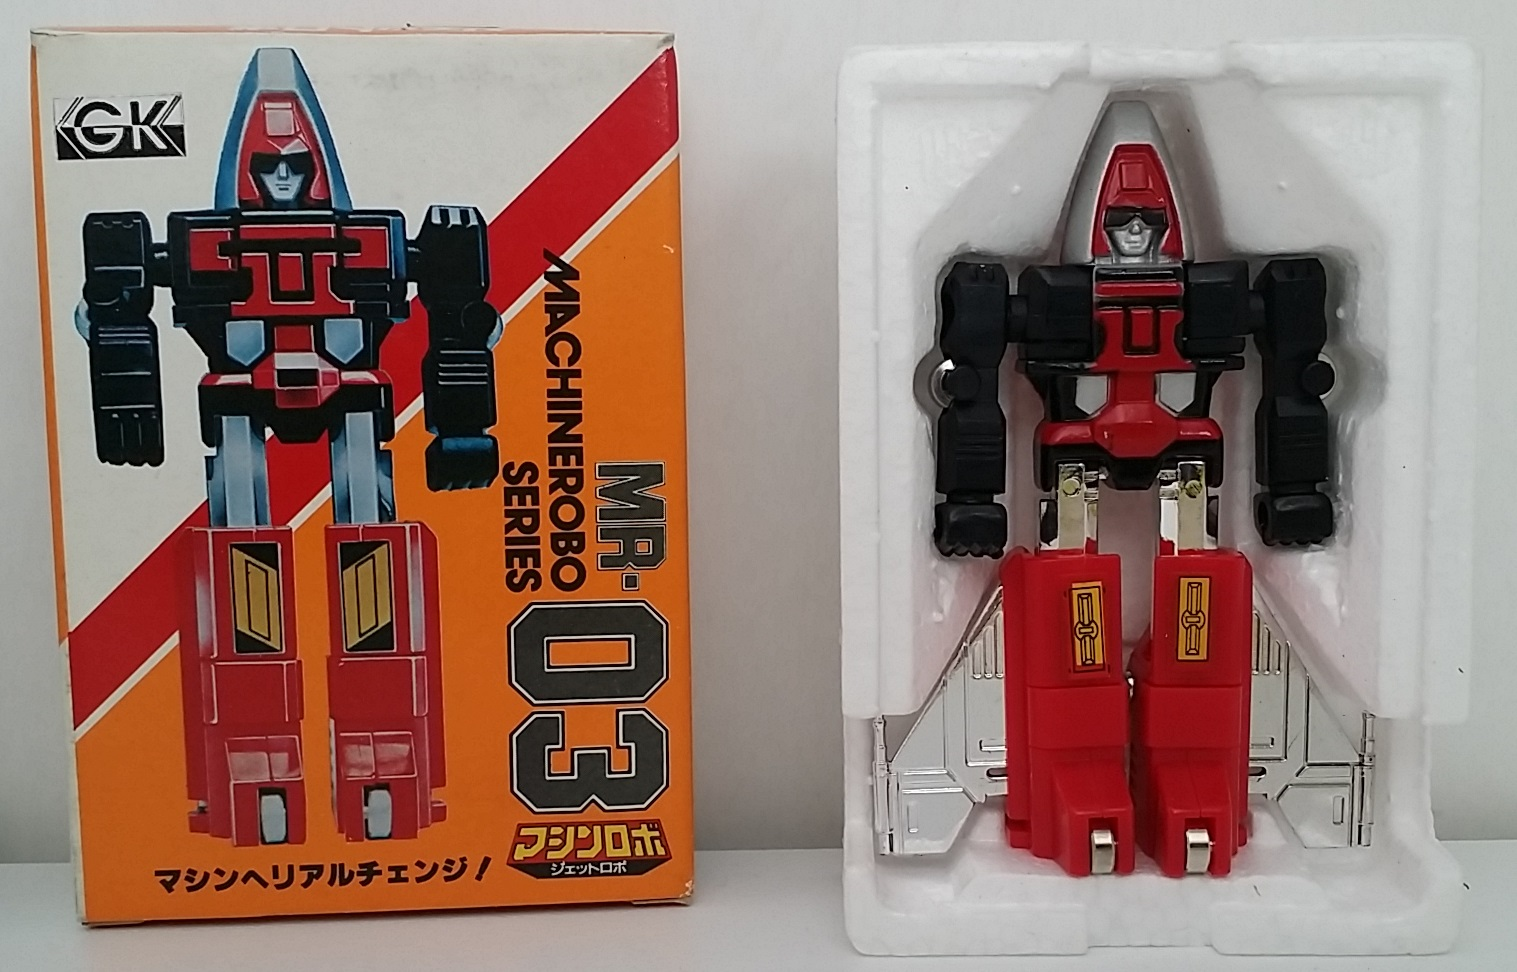 (マシンロボ) MachineRobo MR-03 Jet Robo(ブルー・ジェット) 1982 Popy Bandai Machine Men robot styrofoam and box from anime Machine Robo Revenge of Cronos(Chronos no Gyakushuu マシンロボ クロノスの大逆襲) 1988-1989 and Challenge of the Gobots 1983-1987 known as Fitor